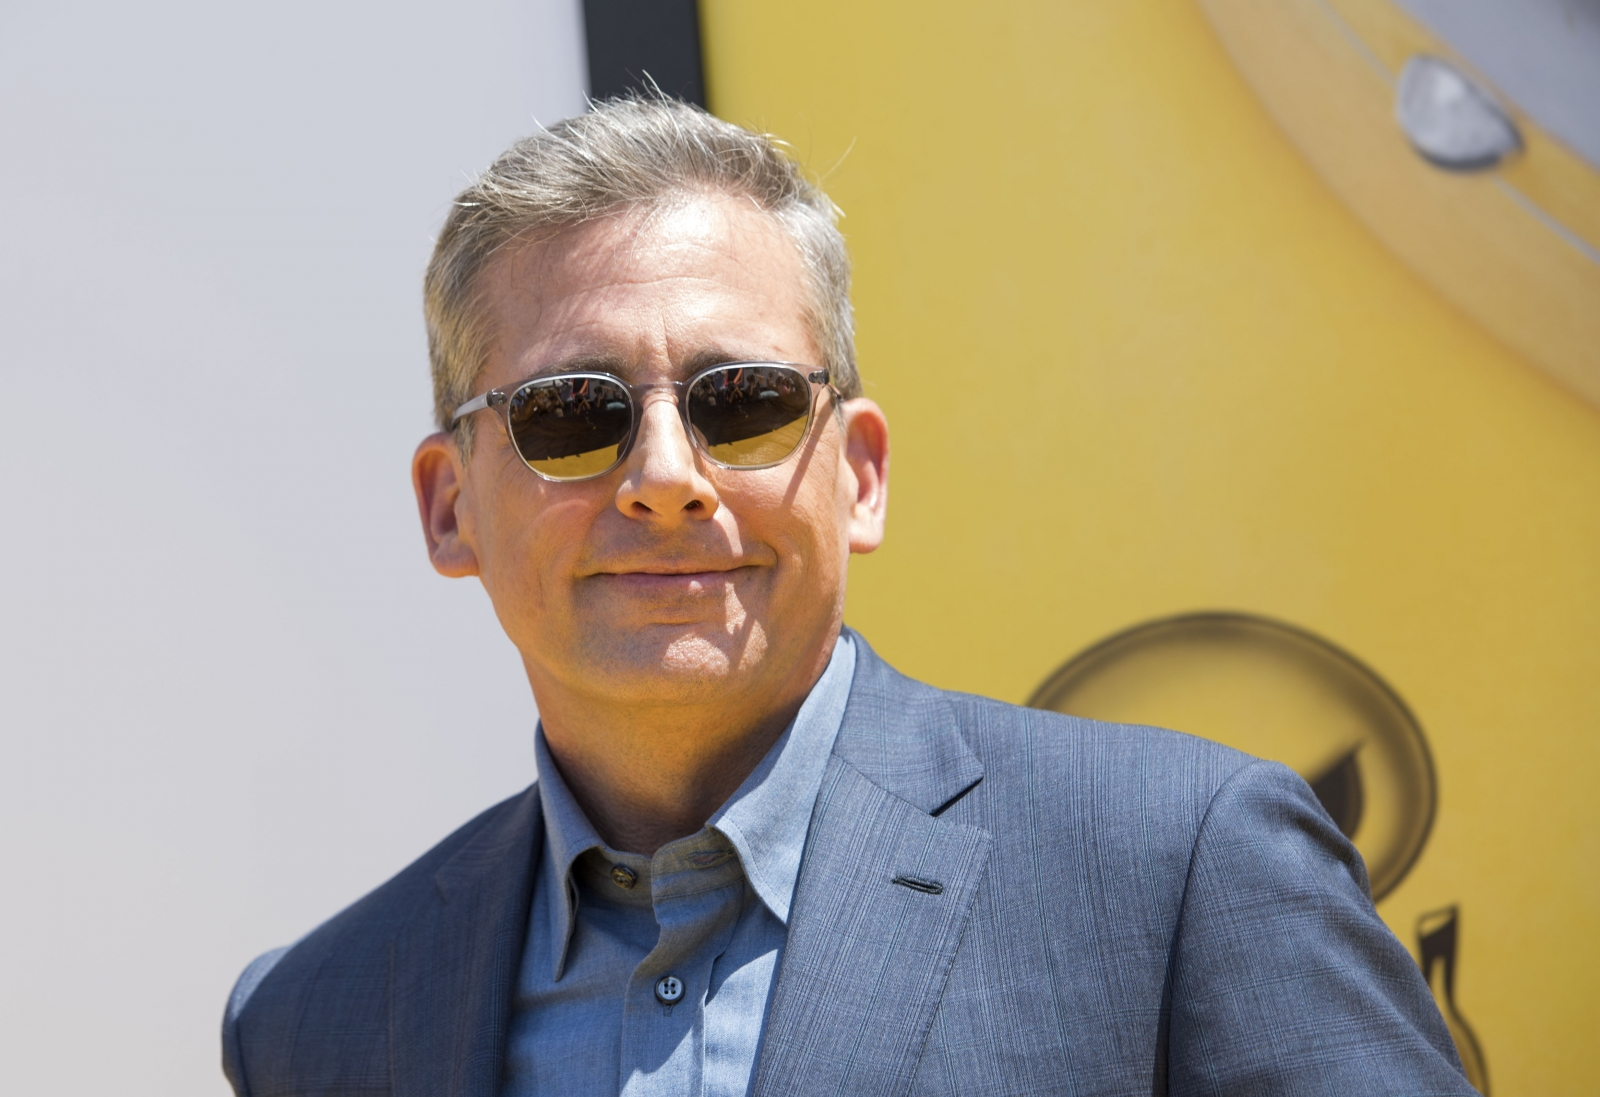 Salt-and-pepper Steve Carell jokes about achieving silver fox status